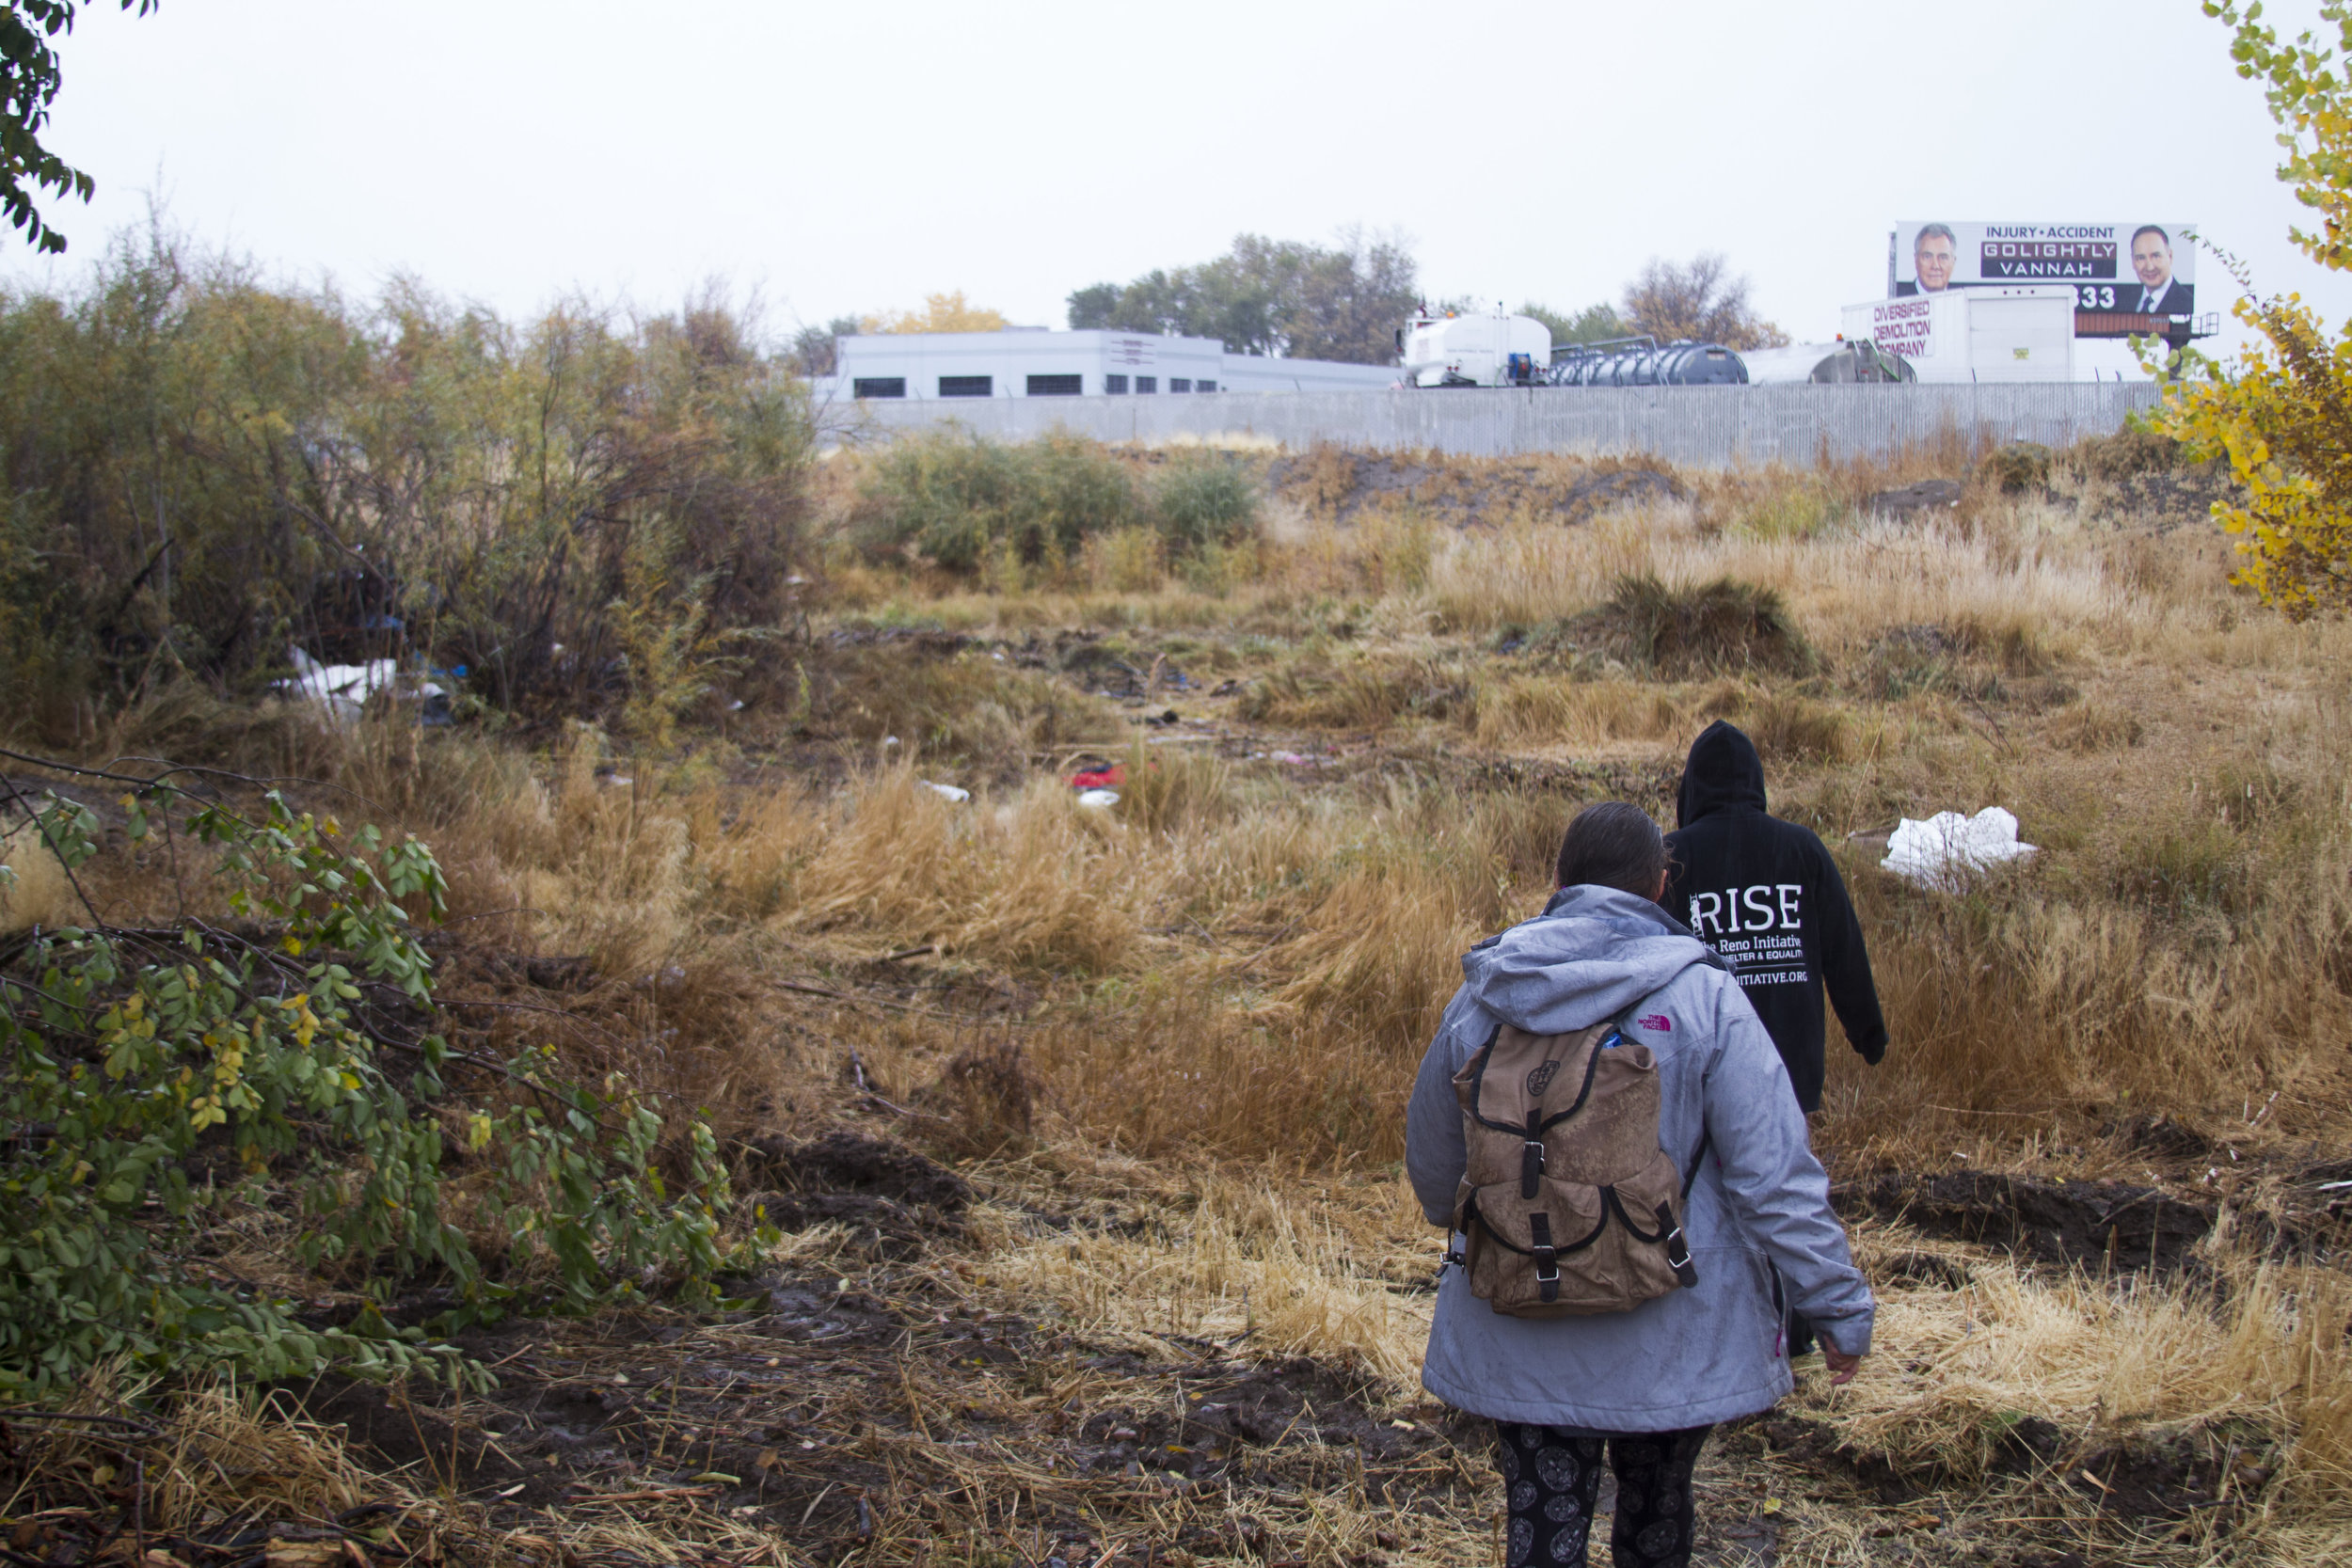 Colling and Cassady walk through the area where they confronted the chainsaw workers.